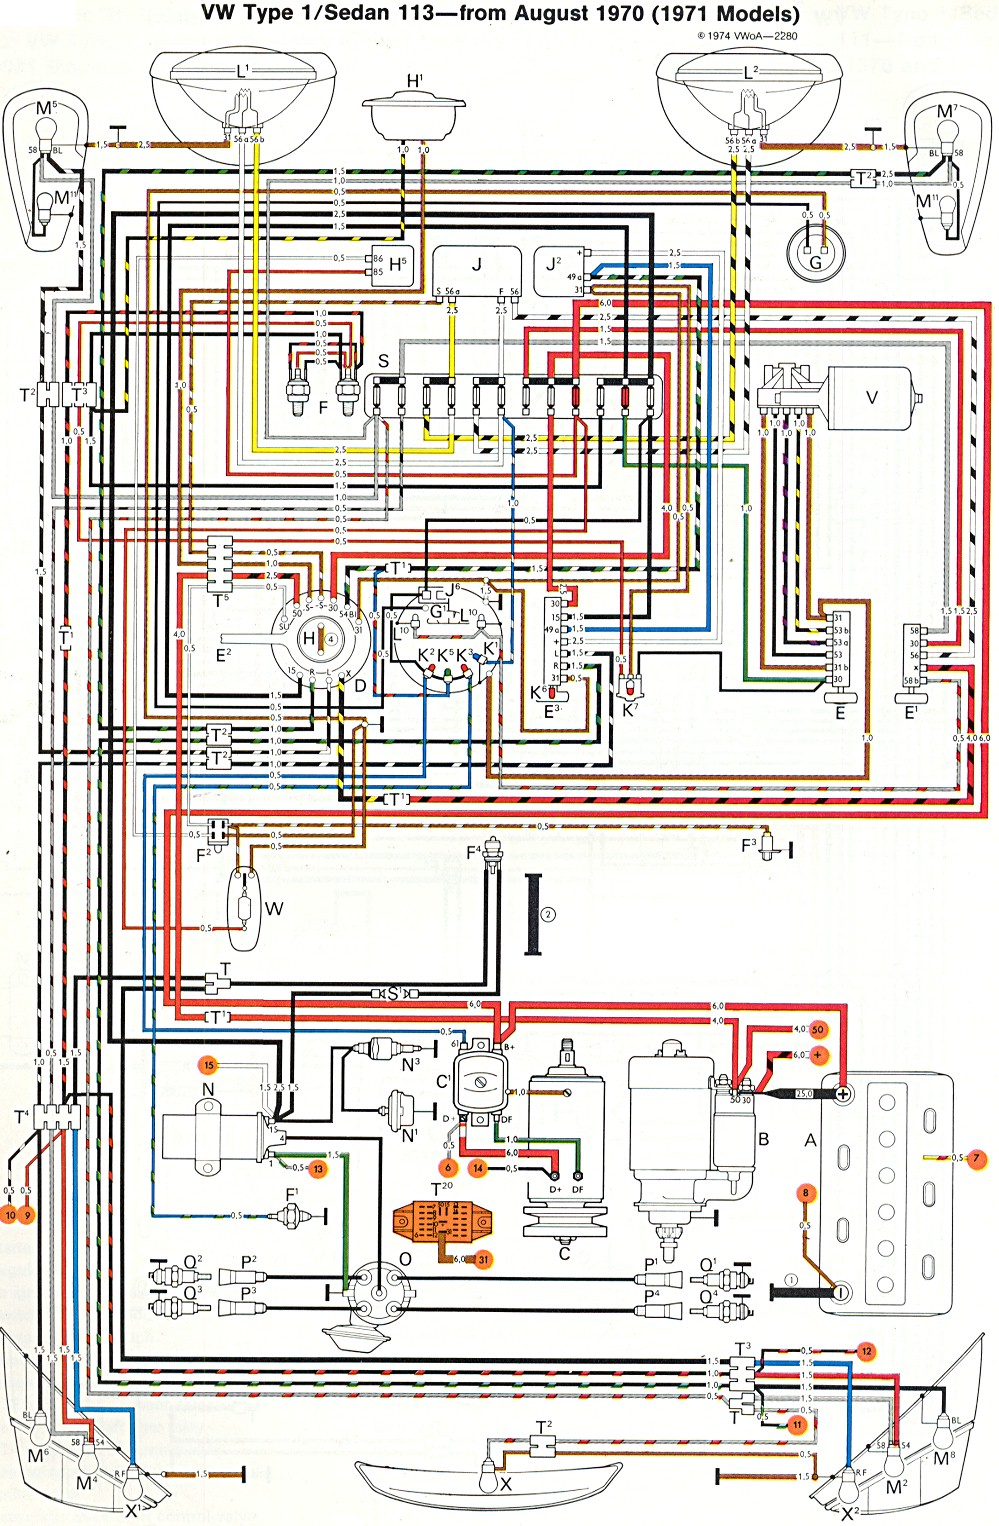 bug_super_71 1971 super beetle wiring diagram thegoldenbug com VW 1971 Beetle Wiper Motor at gsmx.co